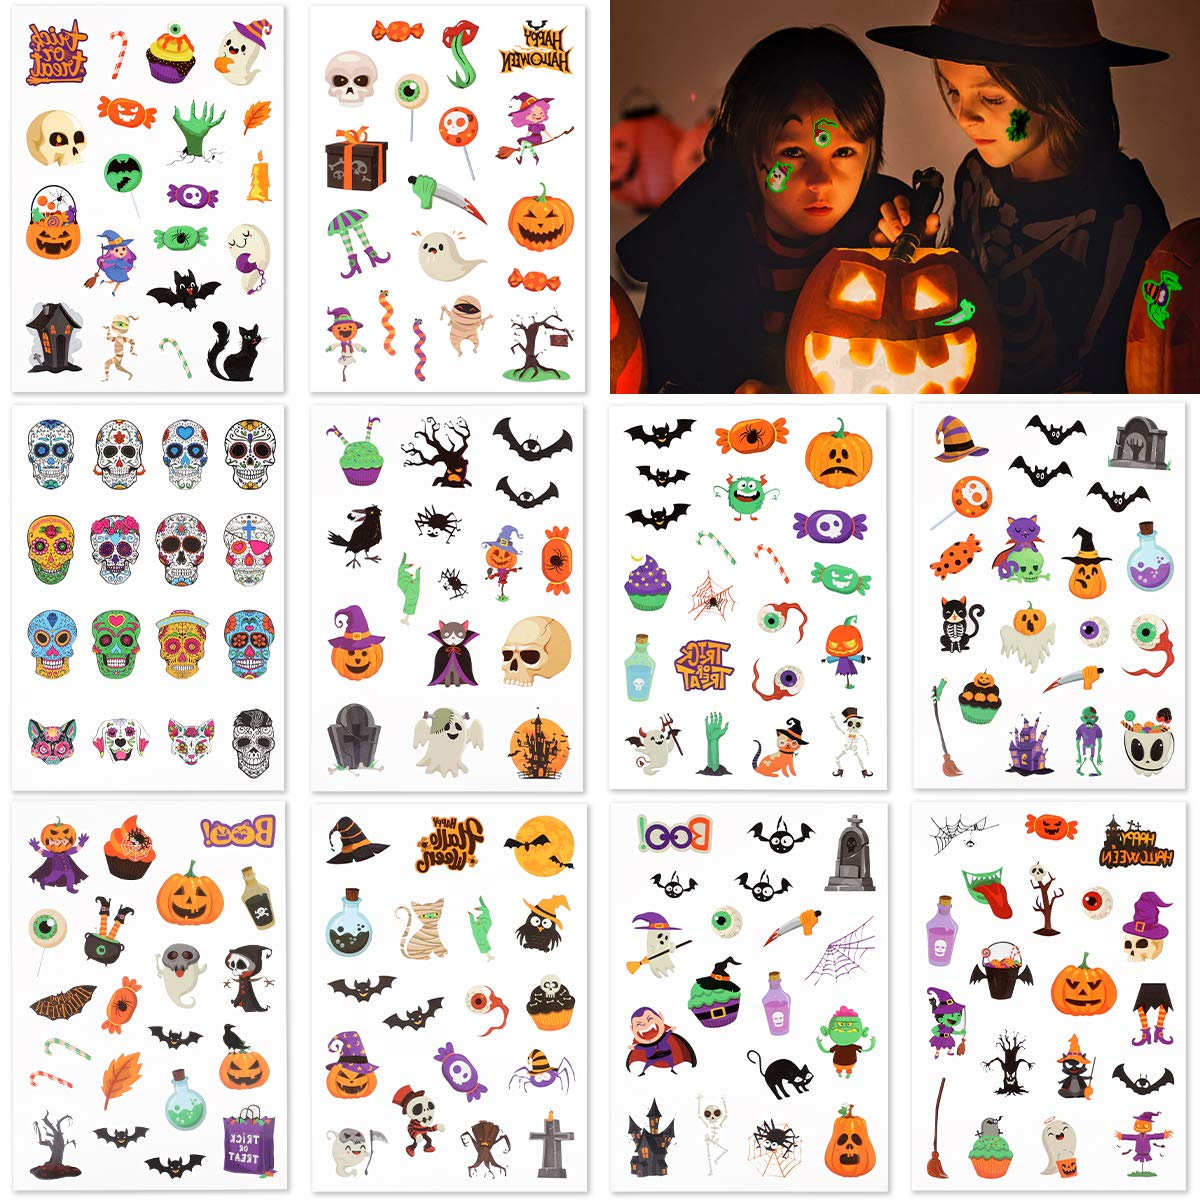 Temporary Tattoos Kids Halloween Tattoos Glow in the Dark Tattoos for Halloween Party Supplies 10 Sheets (187PCs Patterns)